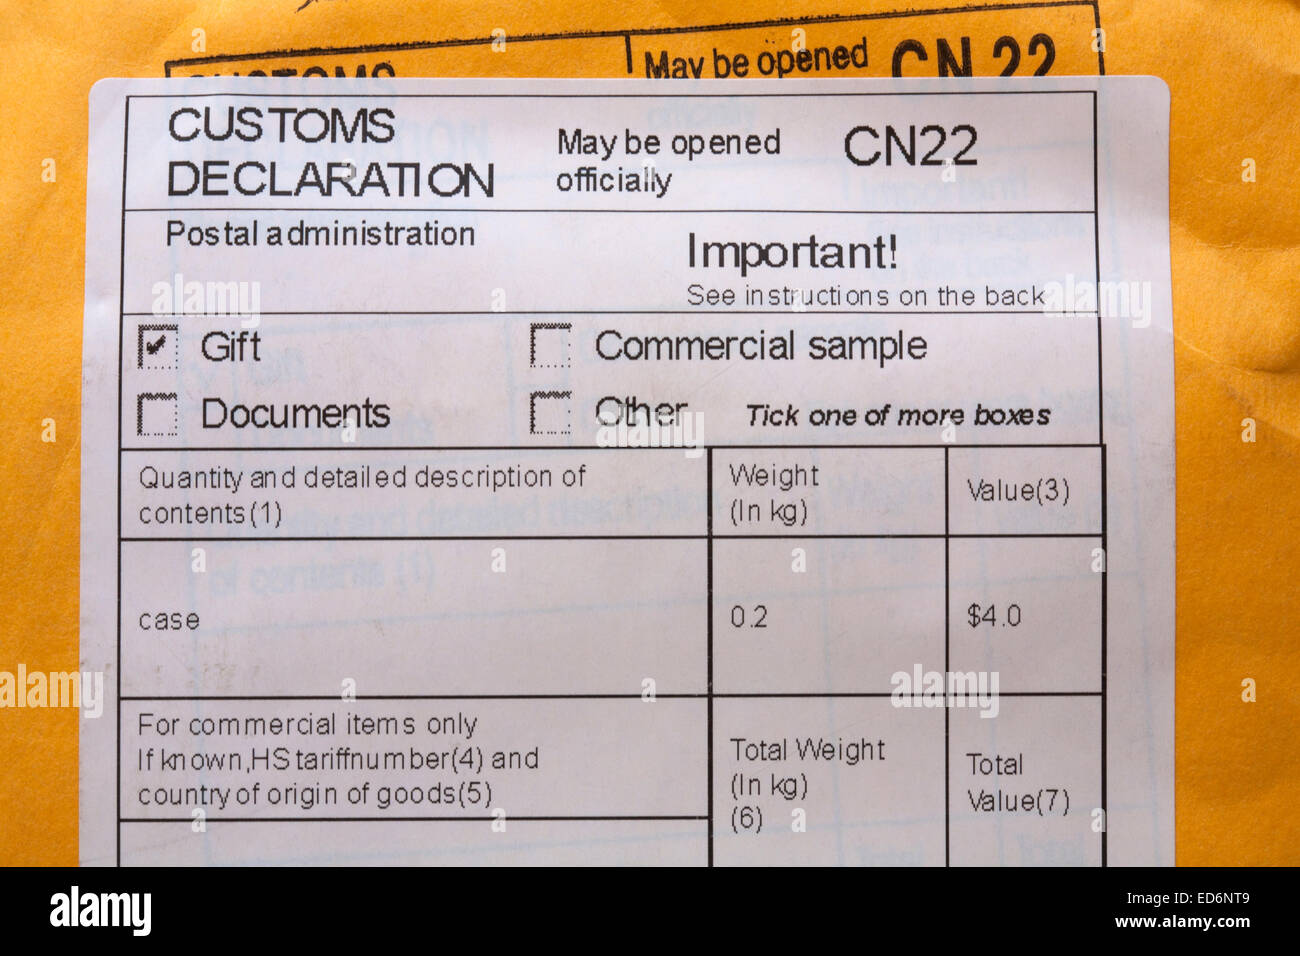 Customs declaration information on package stock photo 76980857 alamy customs declaration information on package thecheapjerseys Choice Image